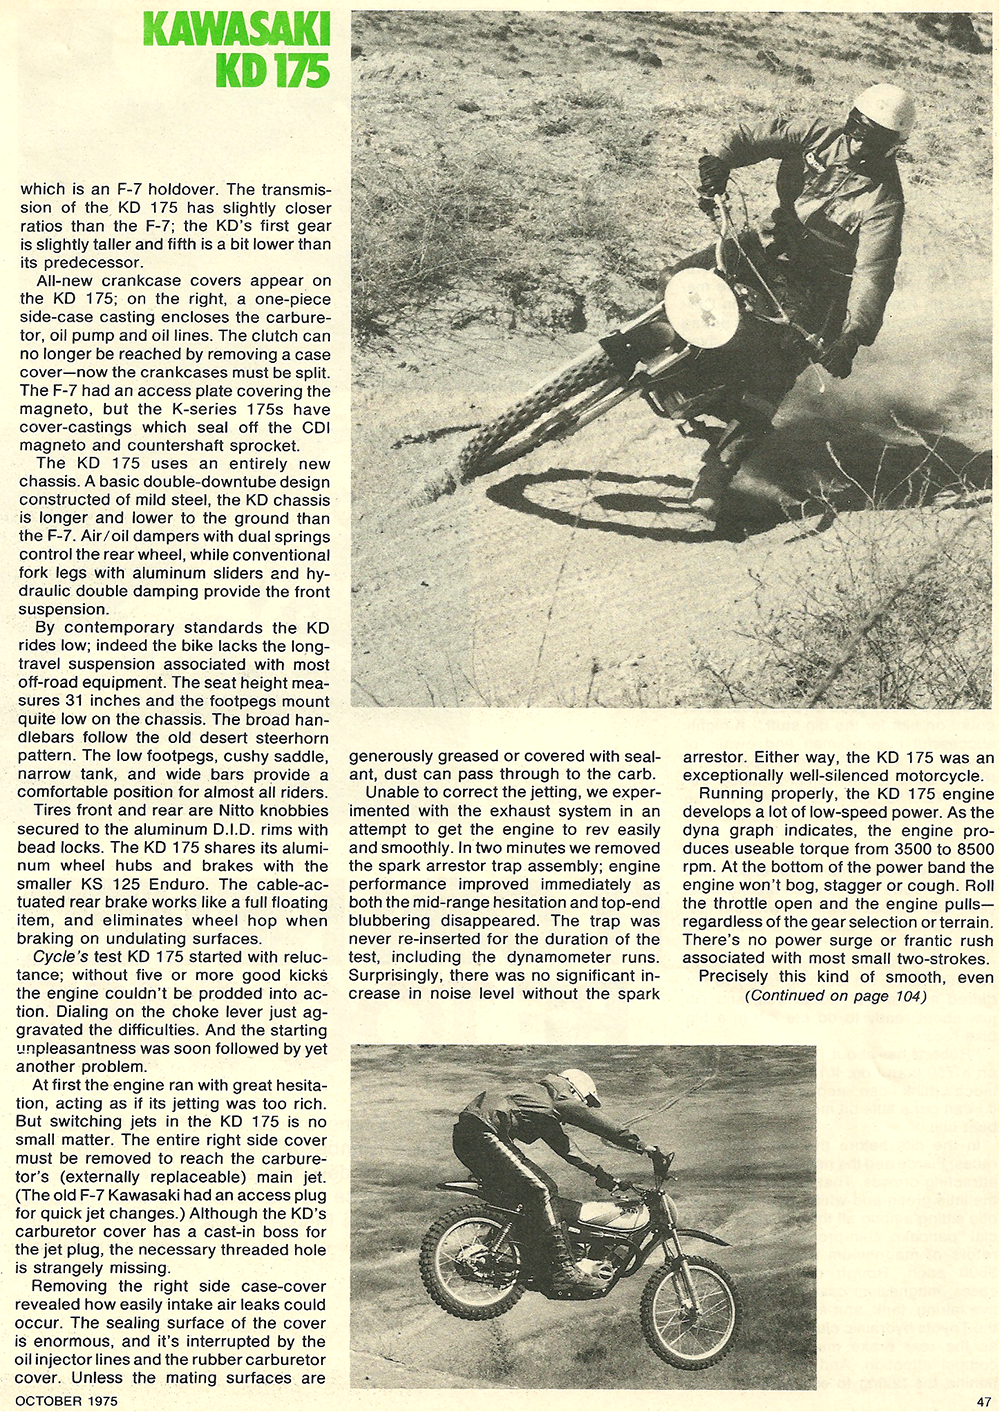 1975 Kawasaki KD 175 road test 4.png